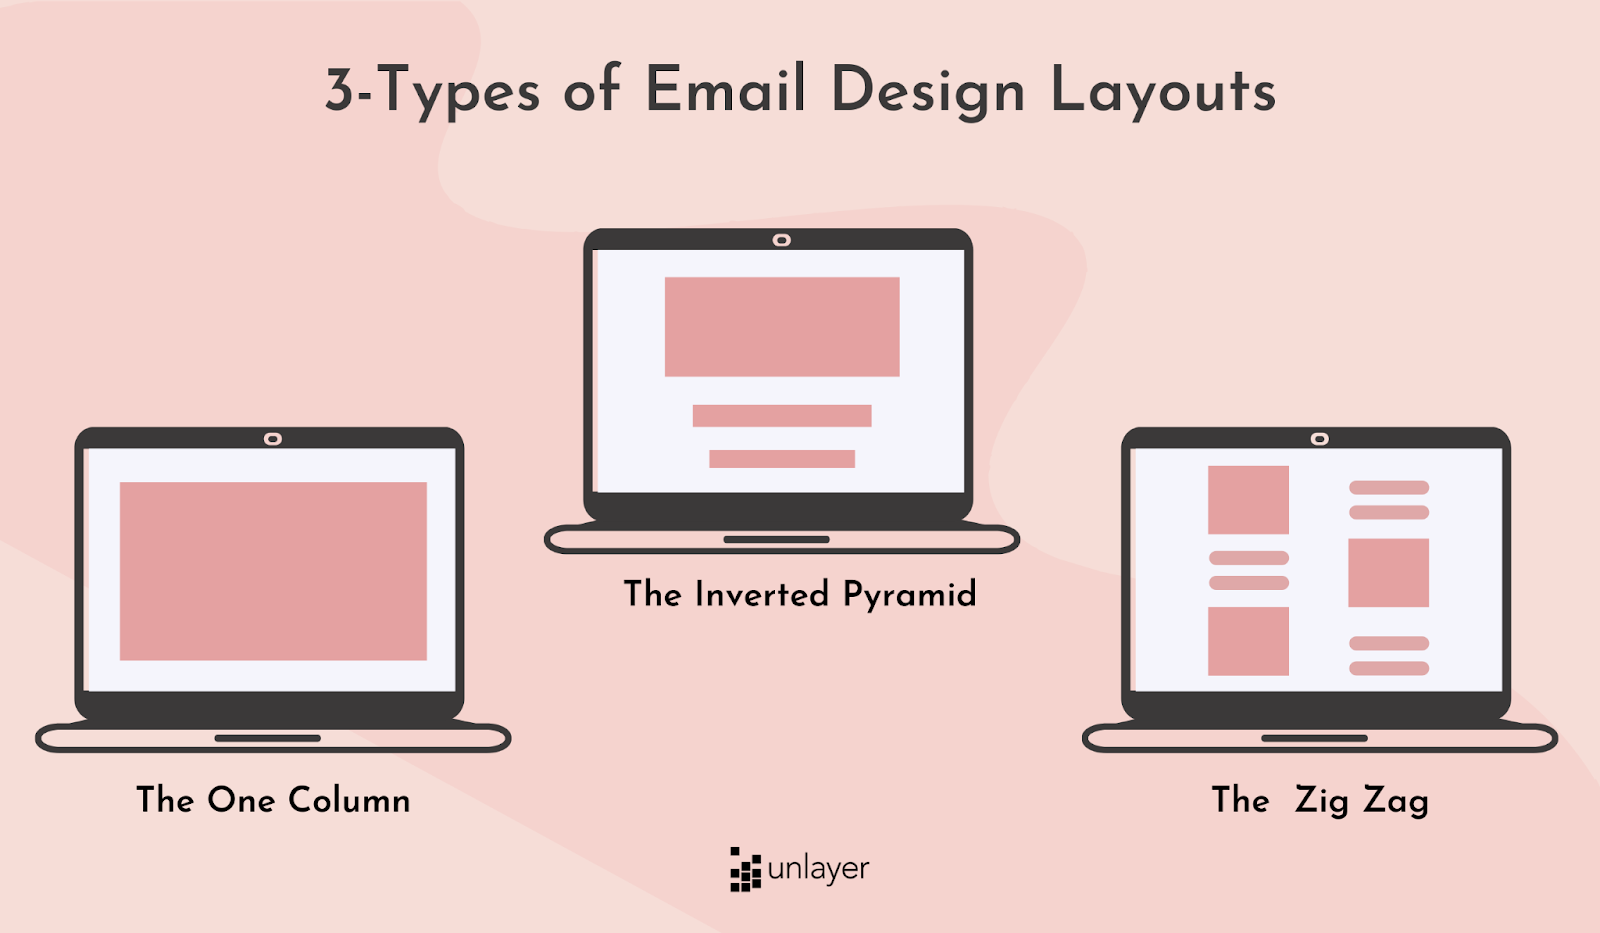 Types of email design layout.